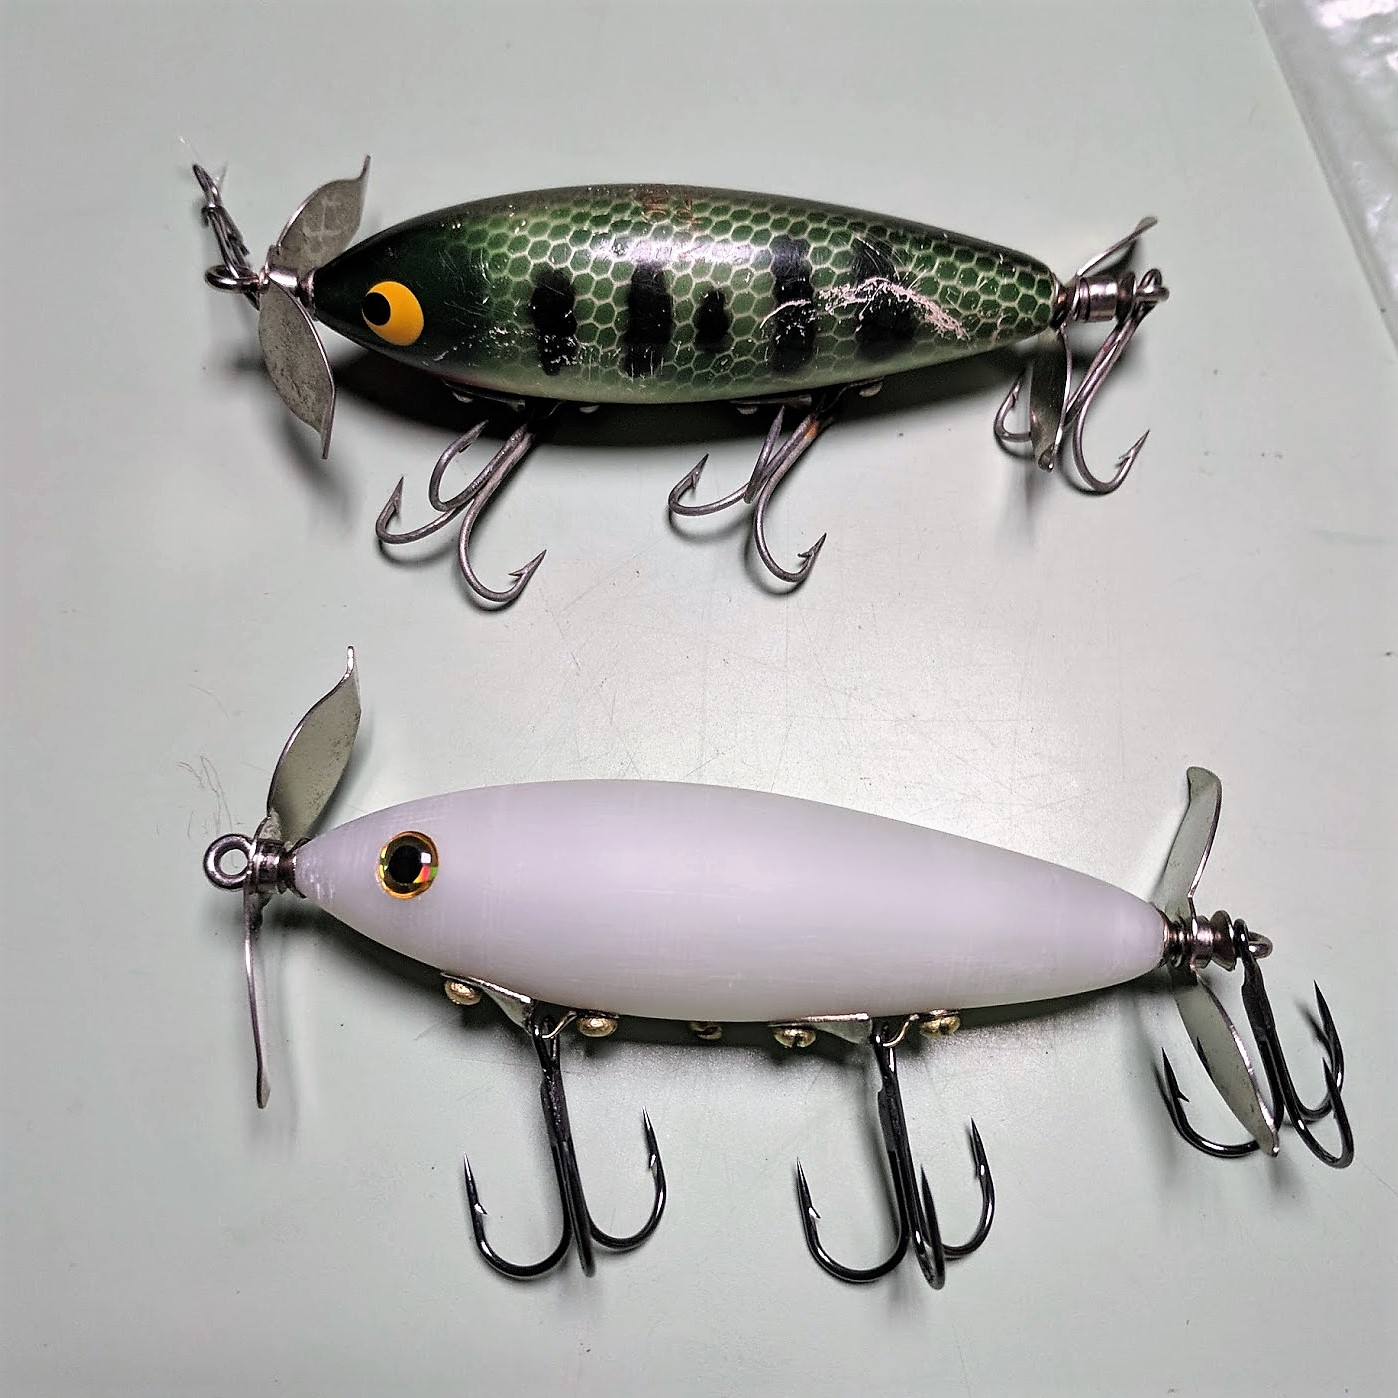 3D-Printing Saves Collectible Lures From A Fishy Ending